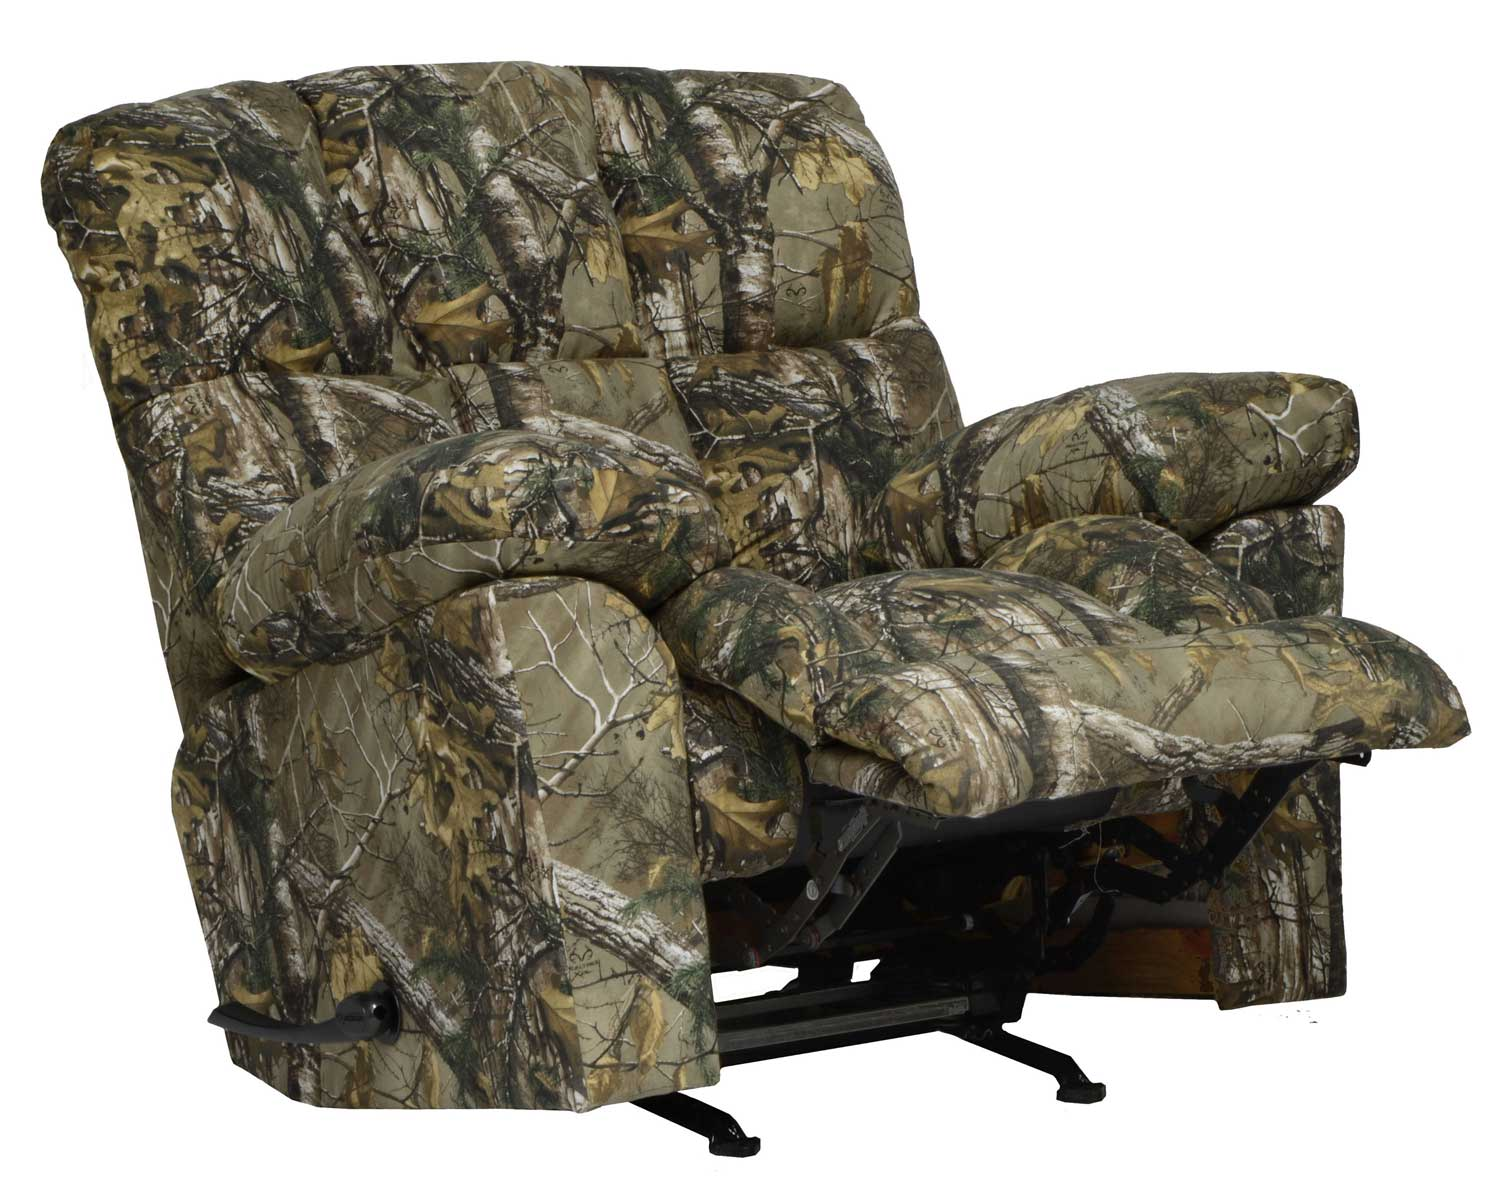 Realtree Chair Catnapper Duck Dynasty Chimney Rock Lay Flat Recliner